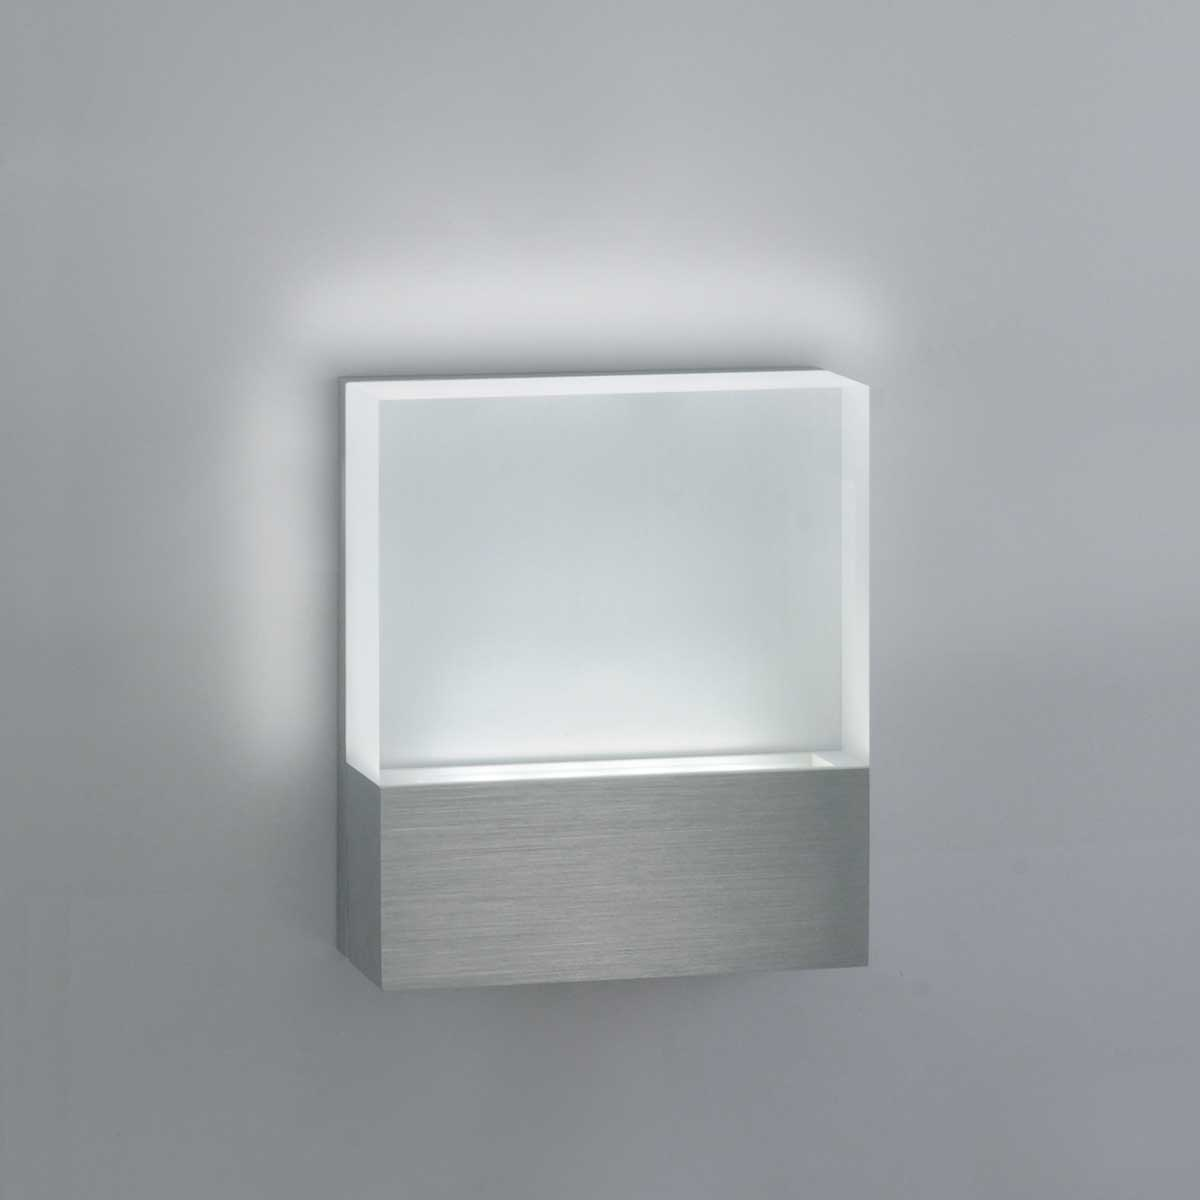 Functions of Wall mounted led light fixtures Warisan Lighting